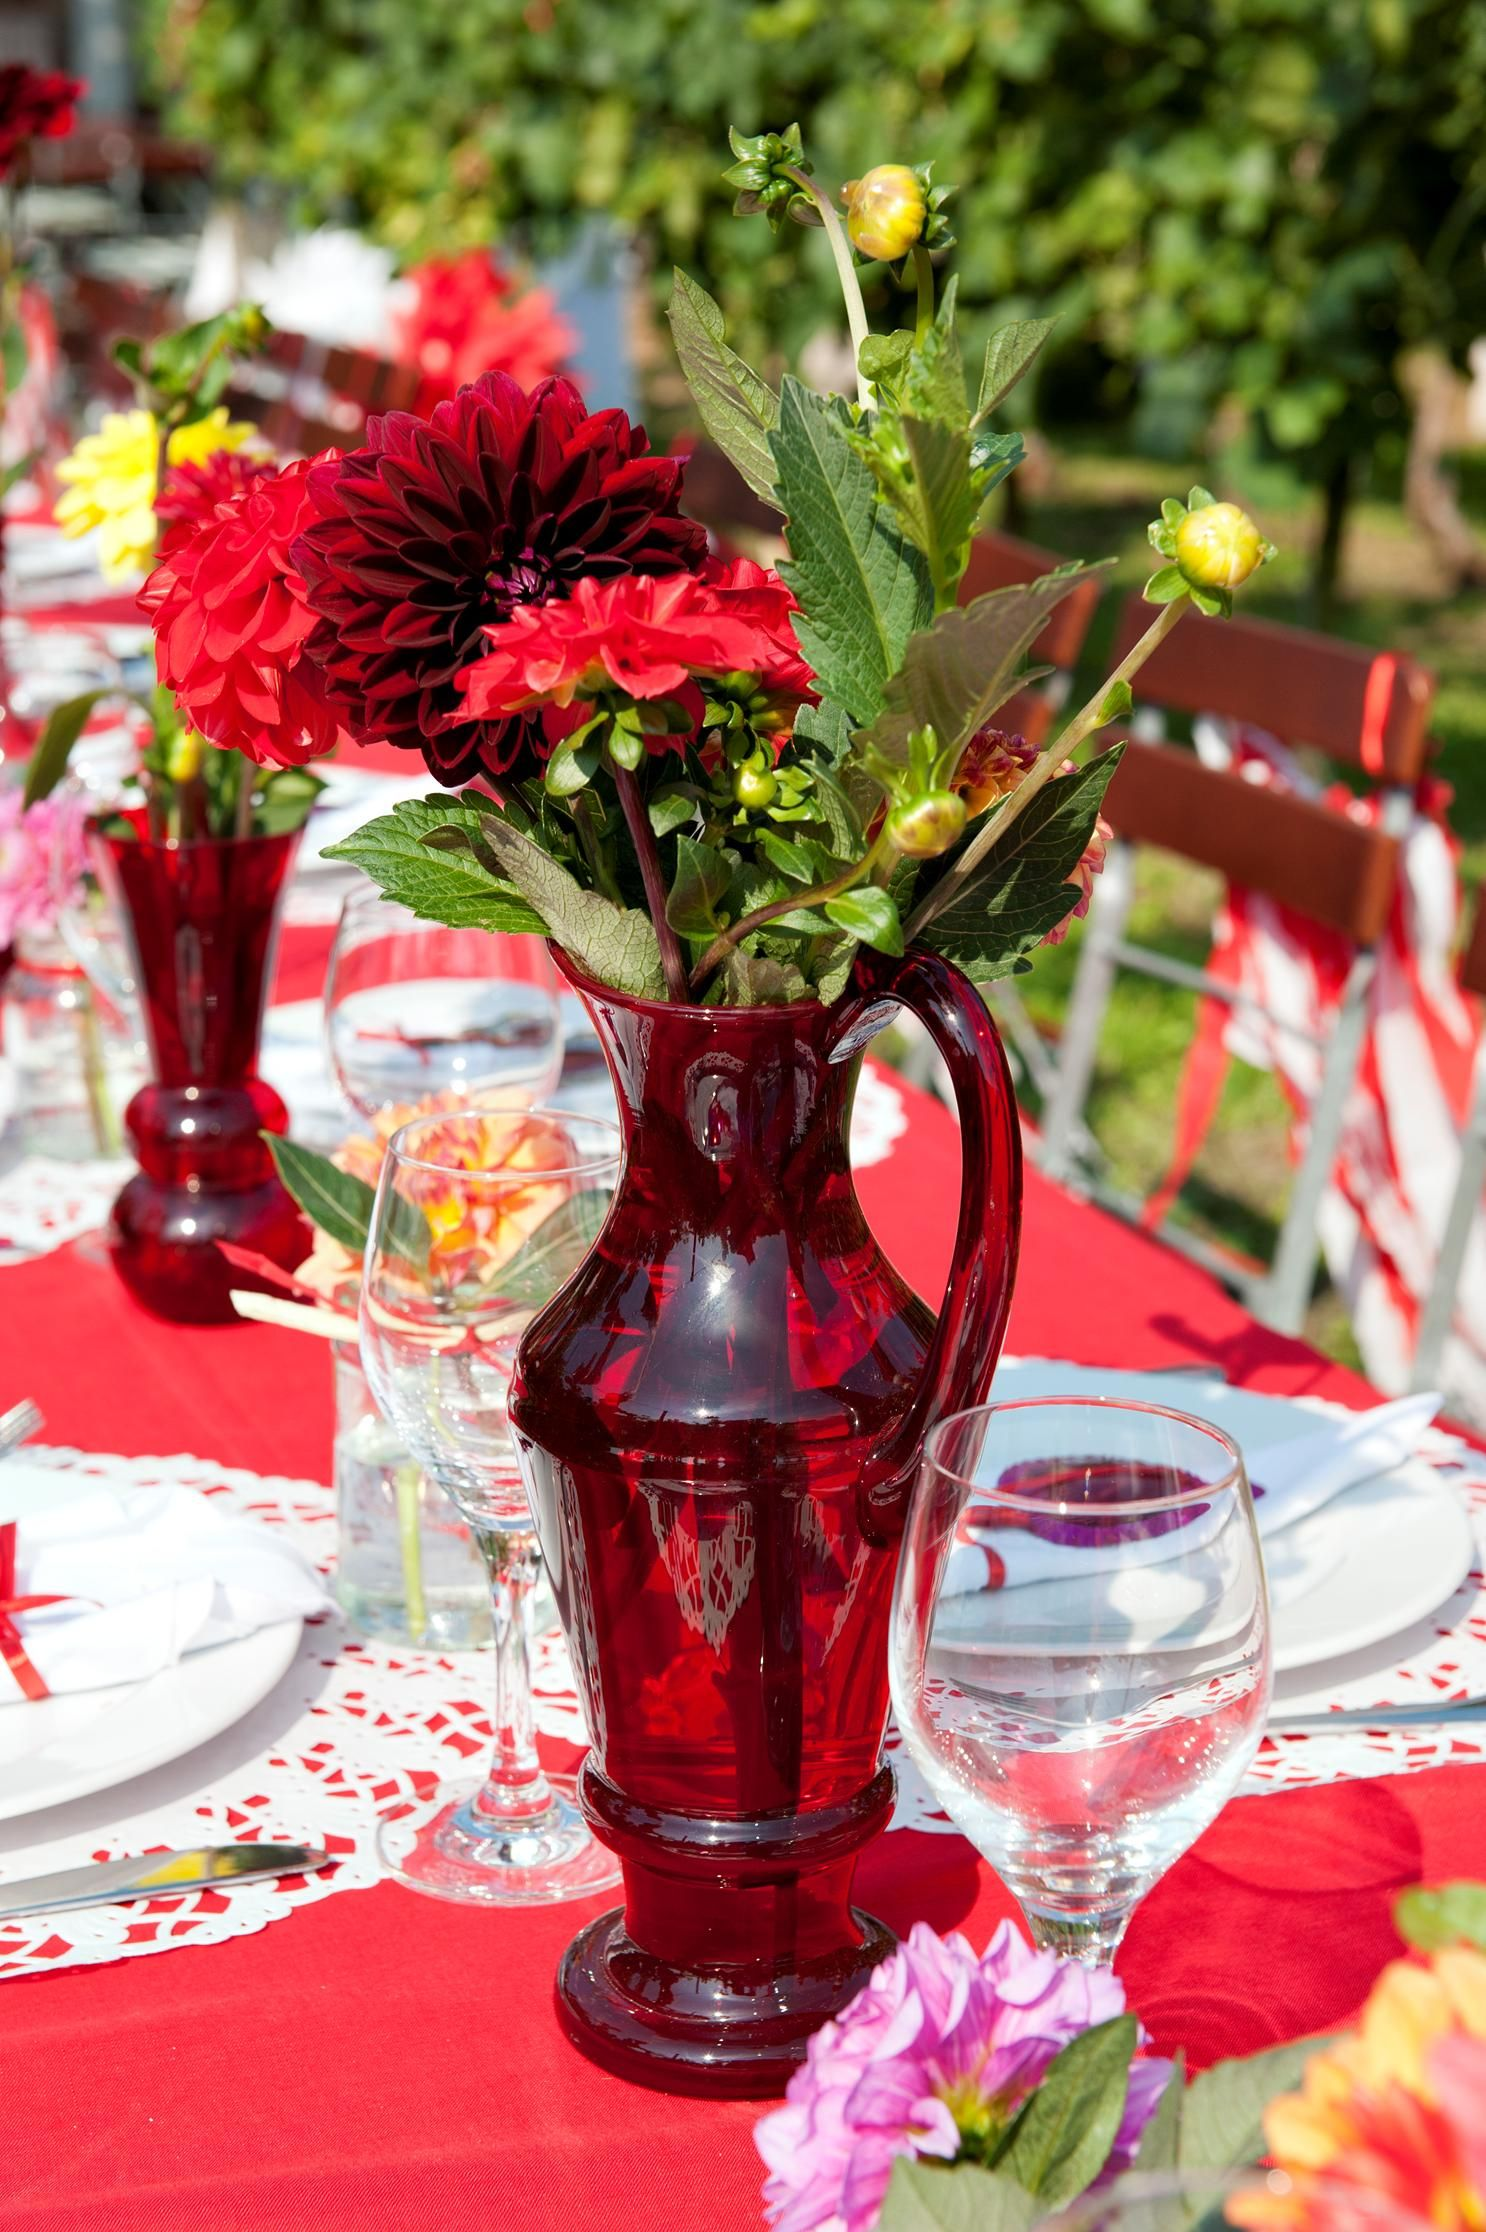 Wedding Decoration In Red And White With Flea Market Find Vases And